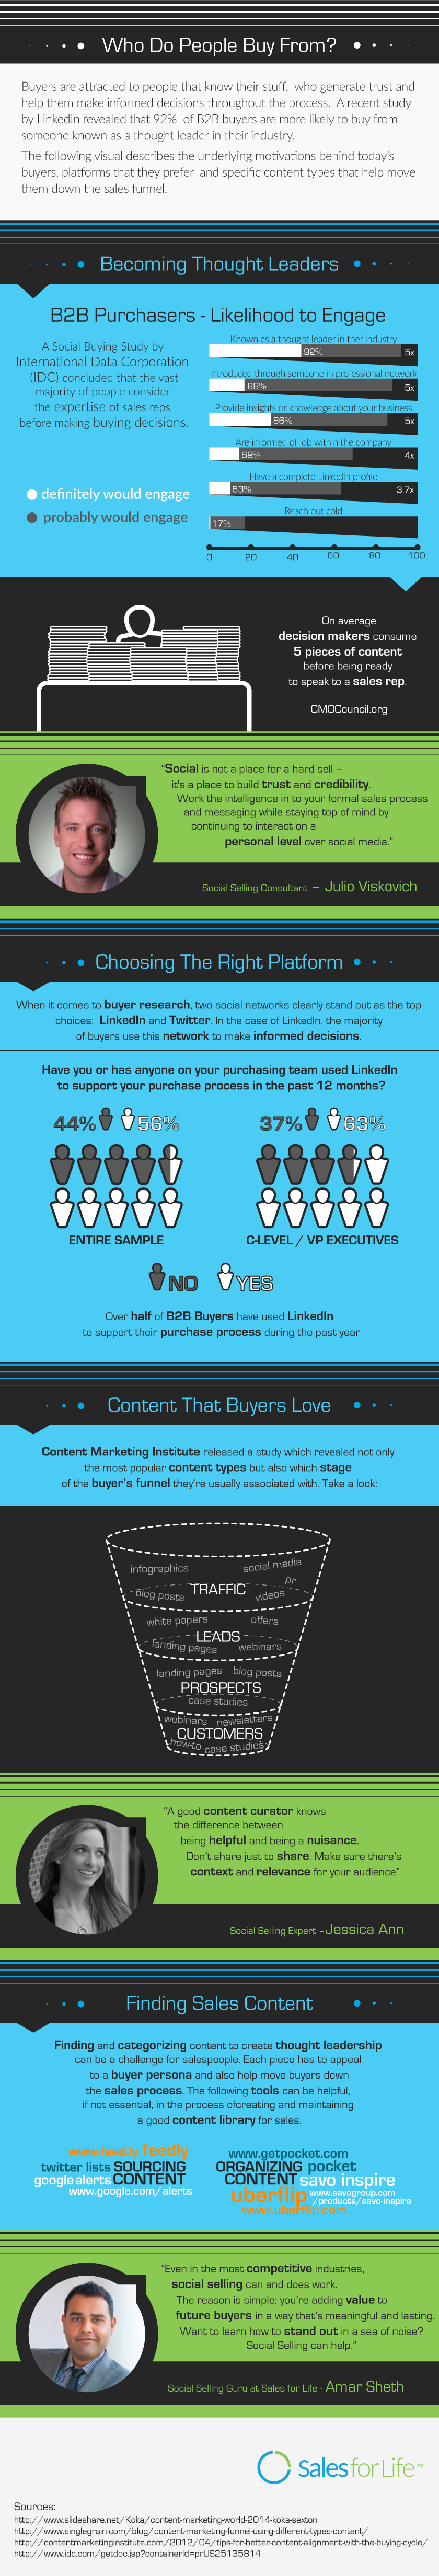 The Science Of Social Selling Success: Who Do People Buy From? - #infographic #contentmarketing